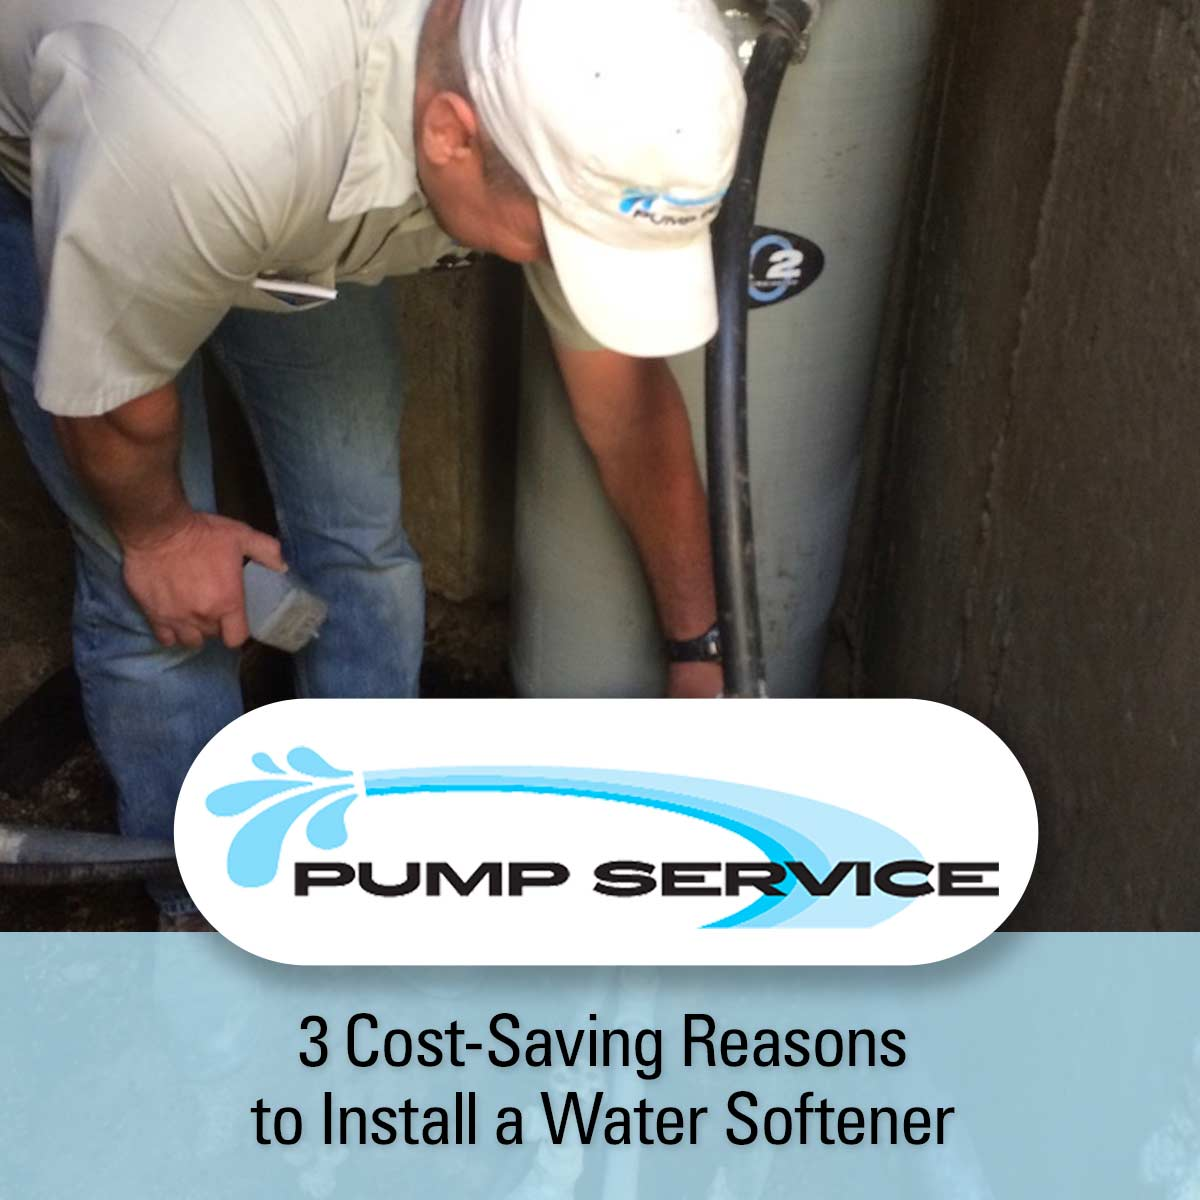 3 Cost-Saving Reasons to Install a Water Softener